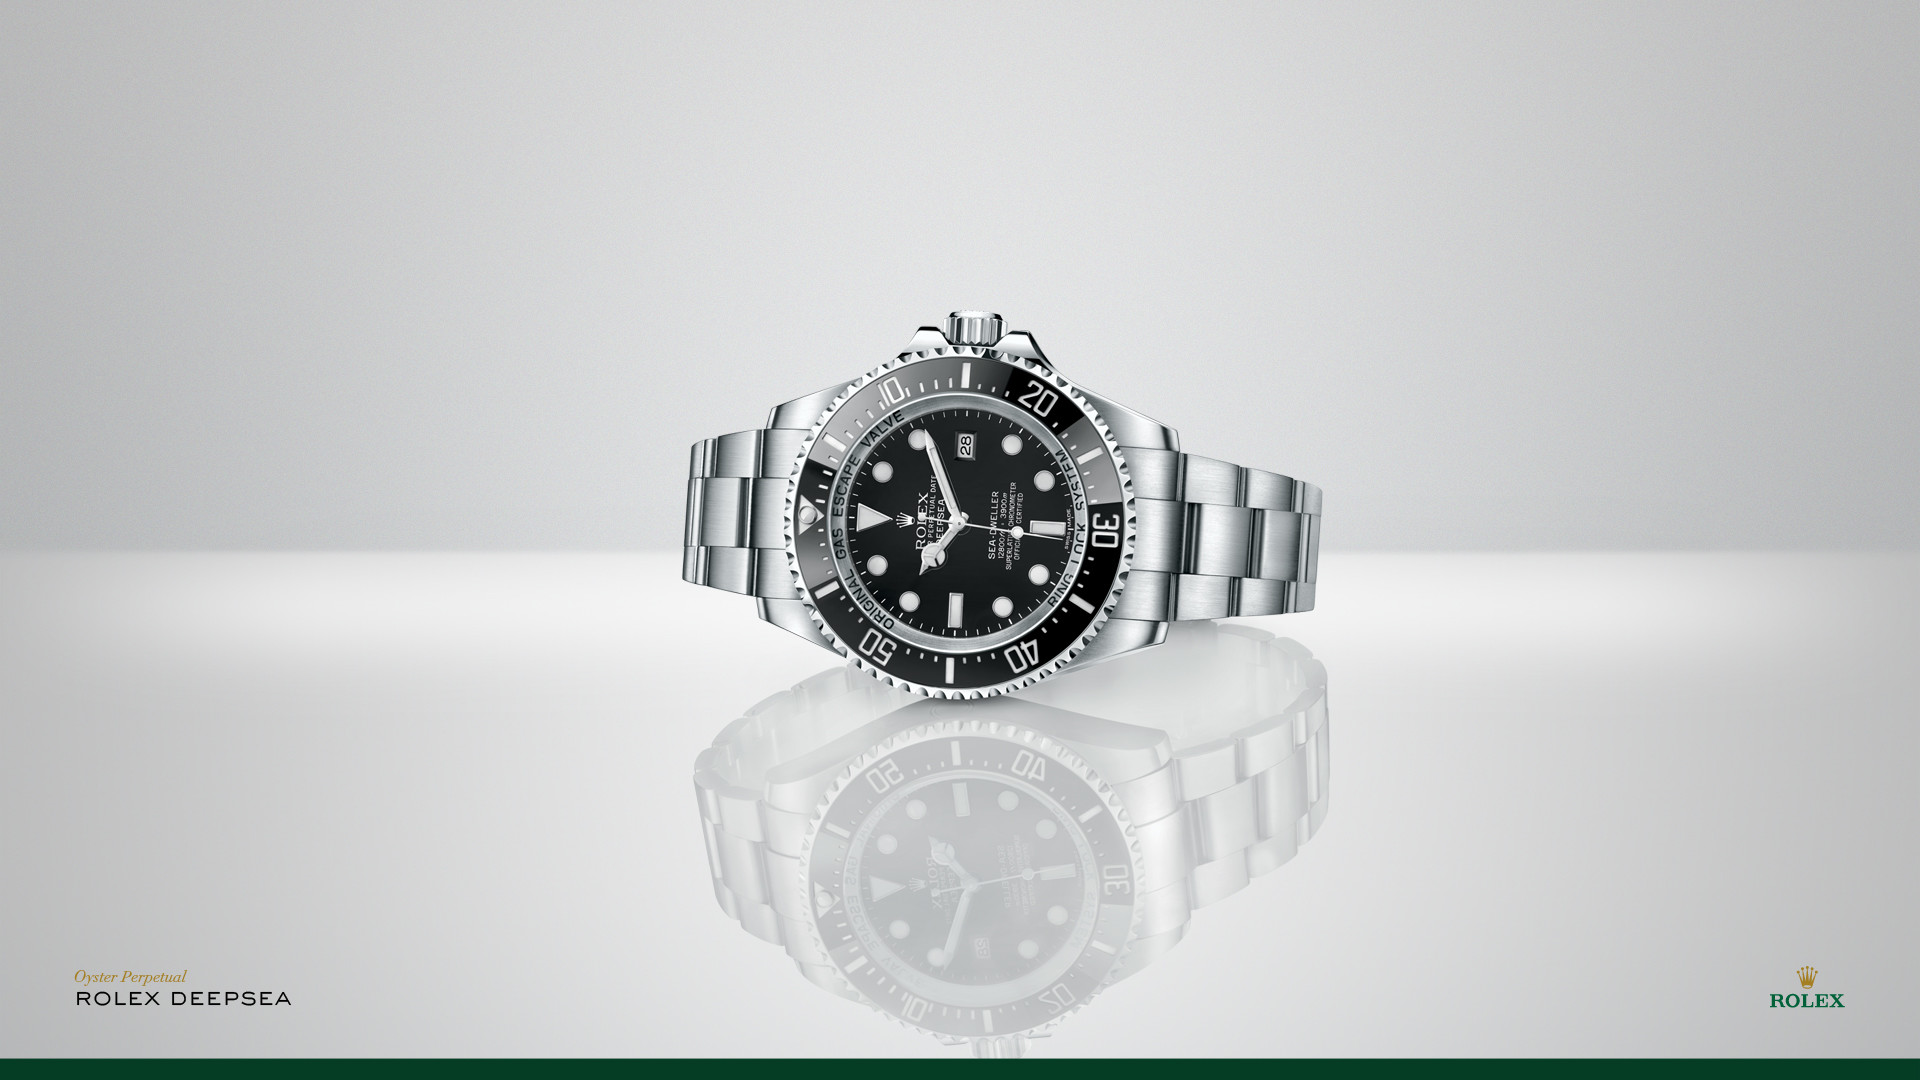 Res: 1920x1080, Rolex Watches Wallpapers Rolex Official Downloads